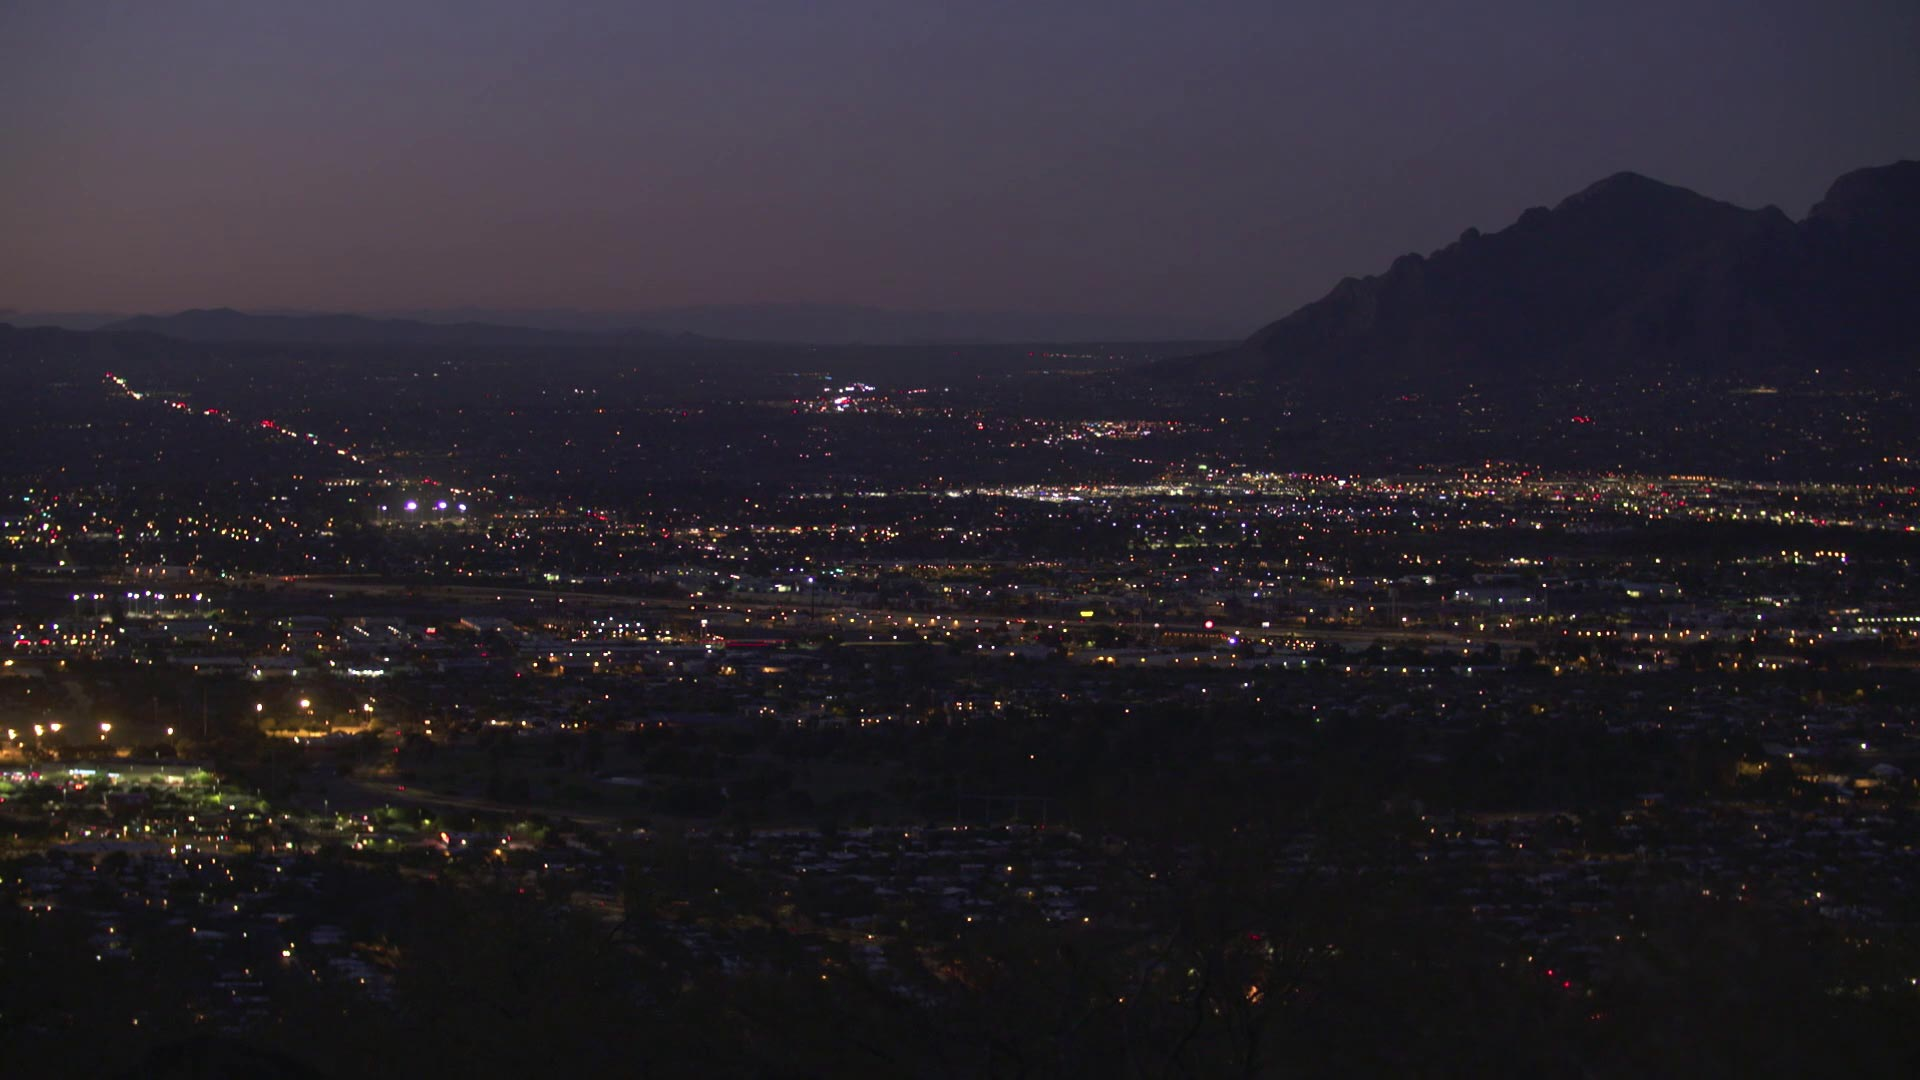 Looking across the city of Tucson from Tumamoc Hill.